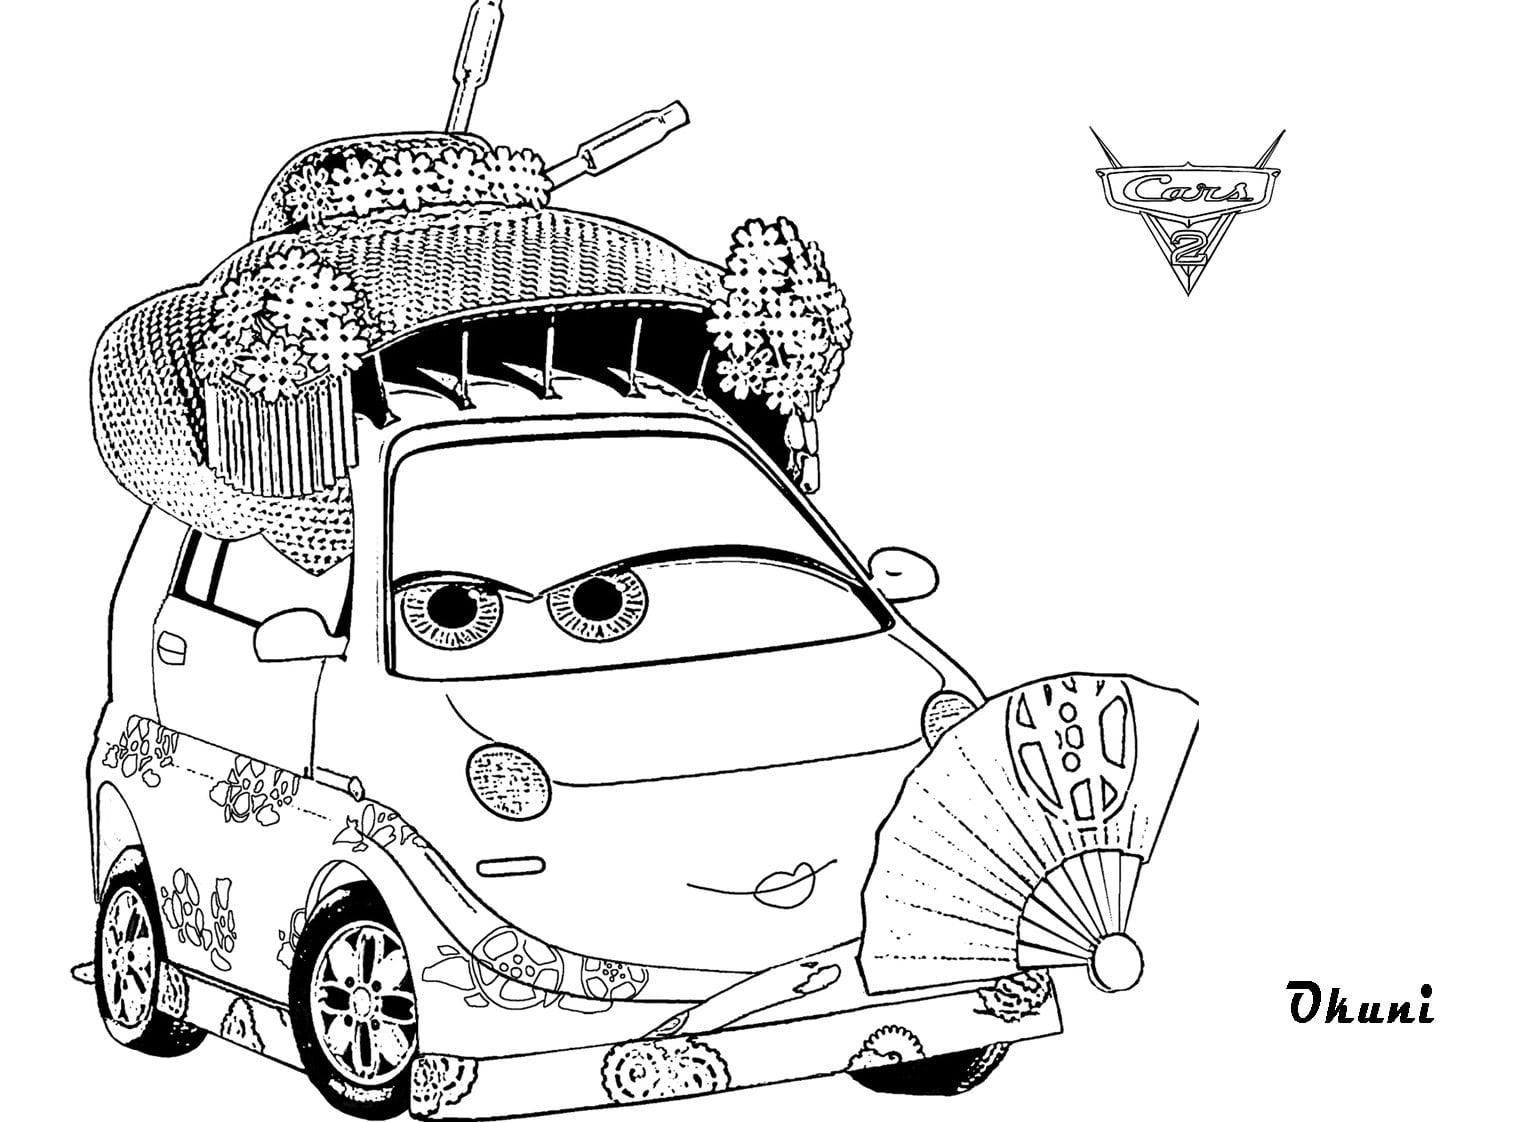 Okuni Coloring Pages For Kids Cars 2